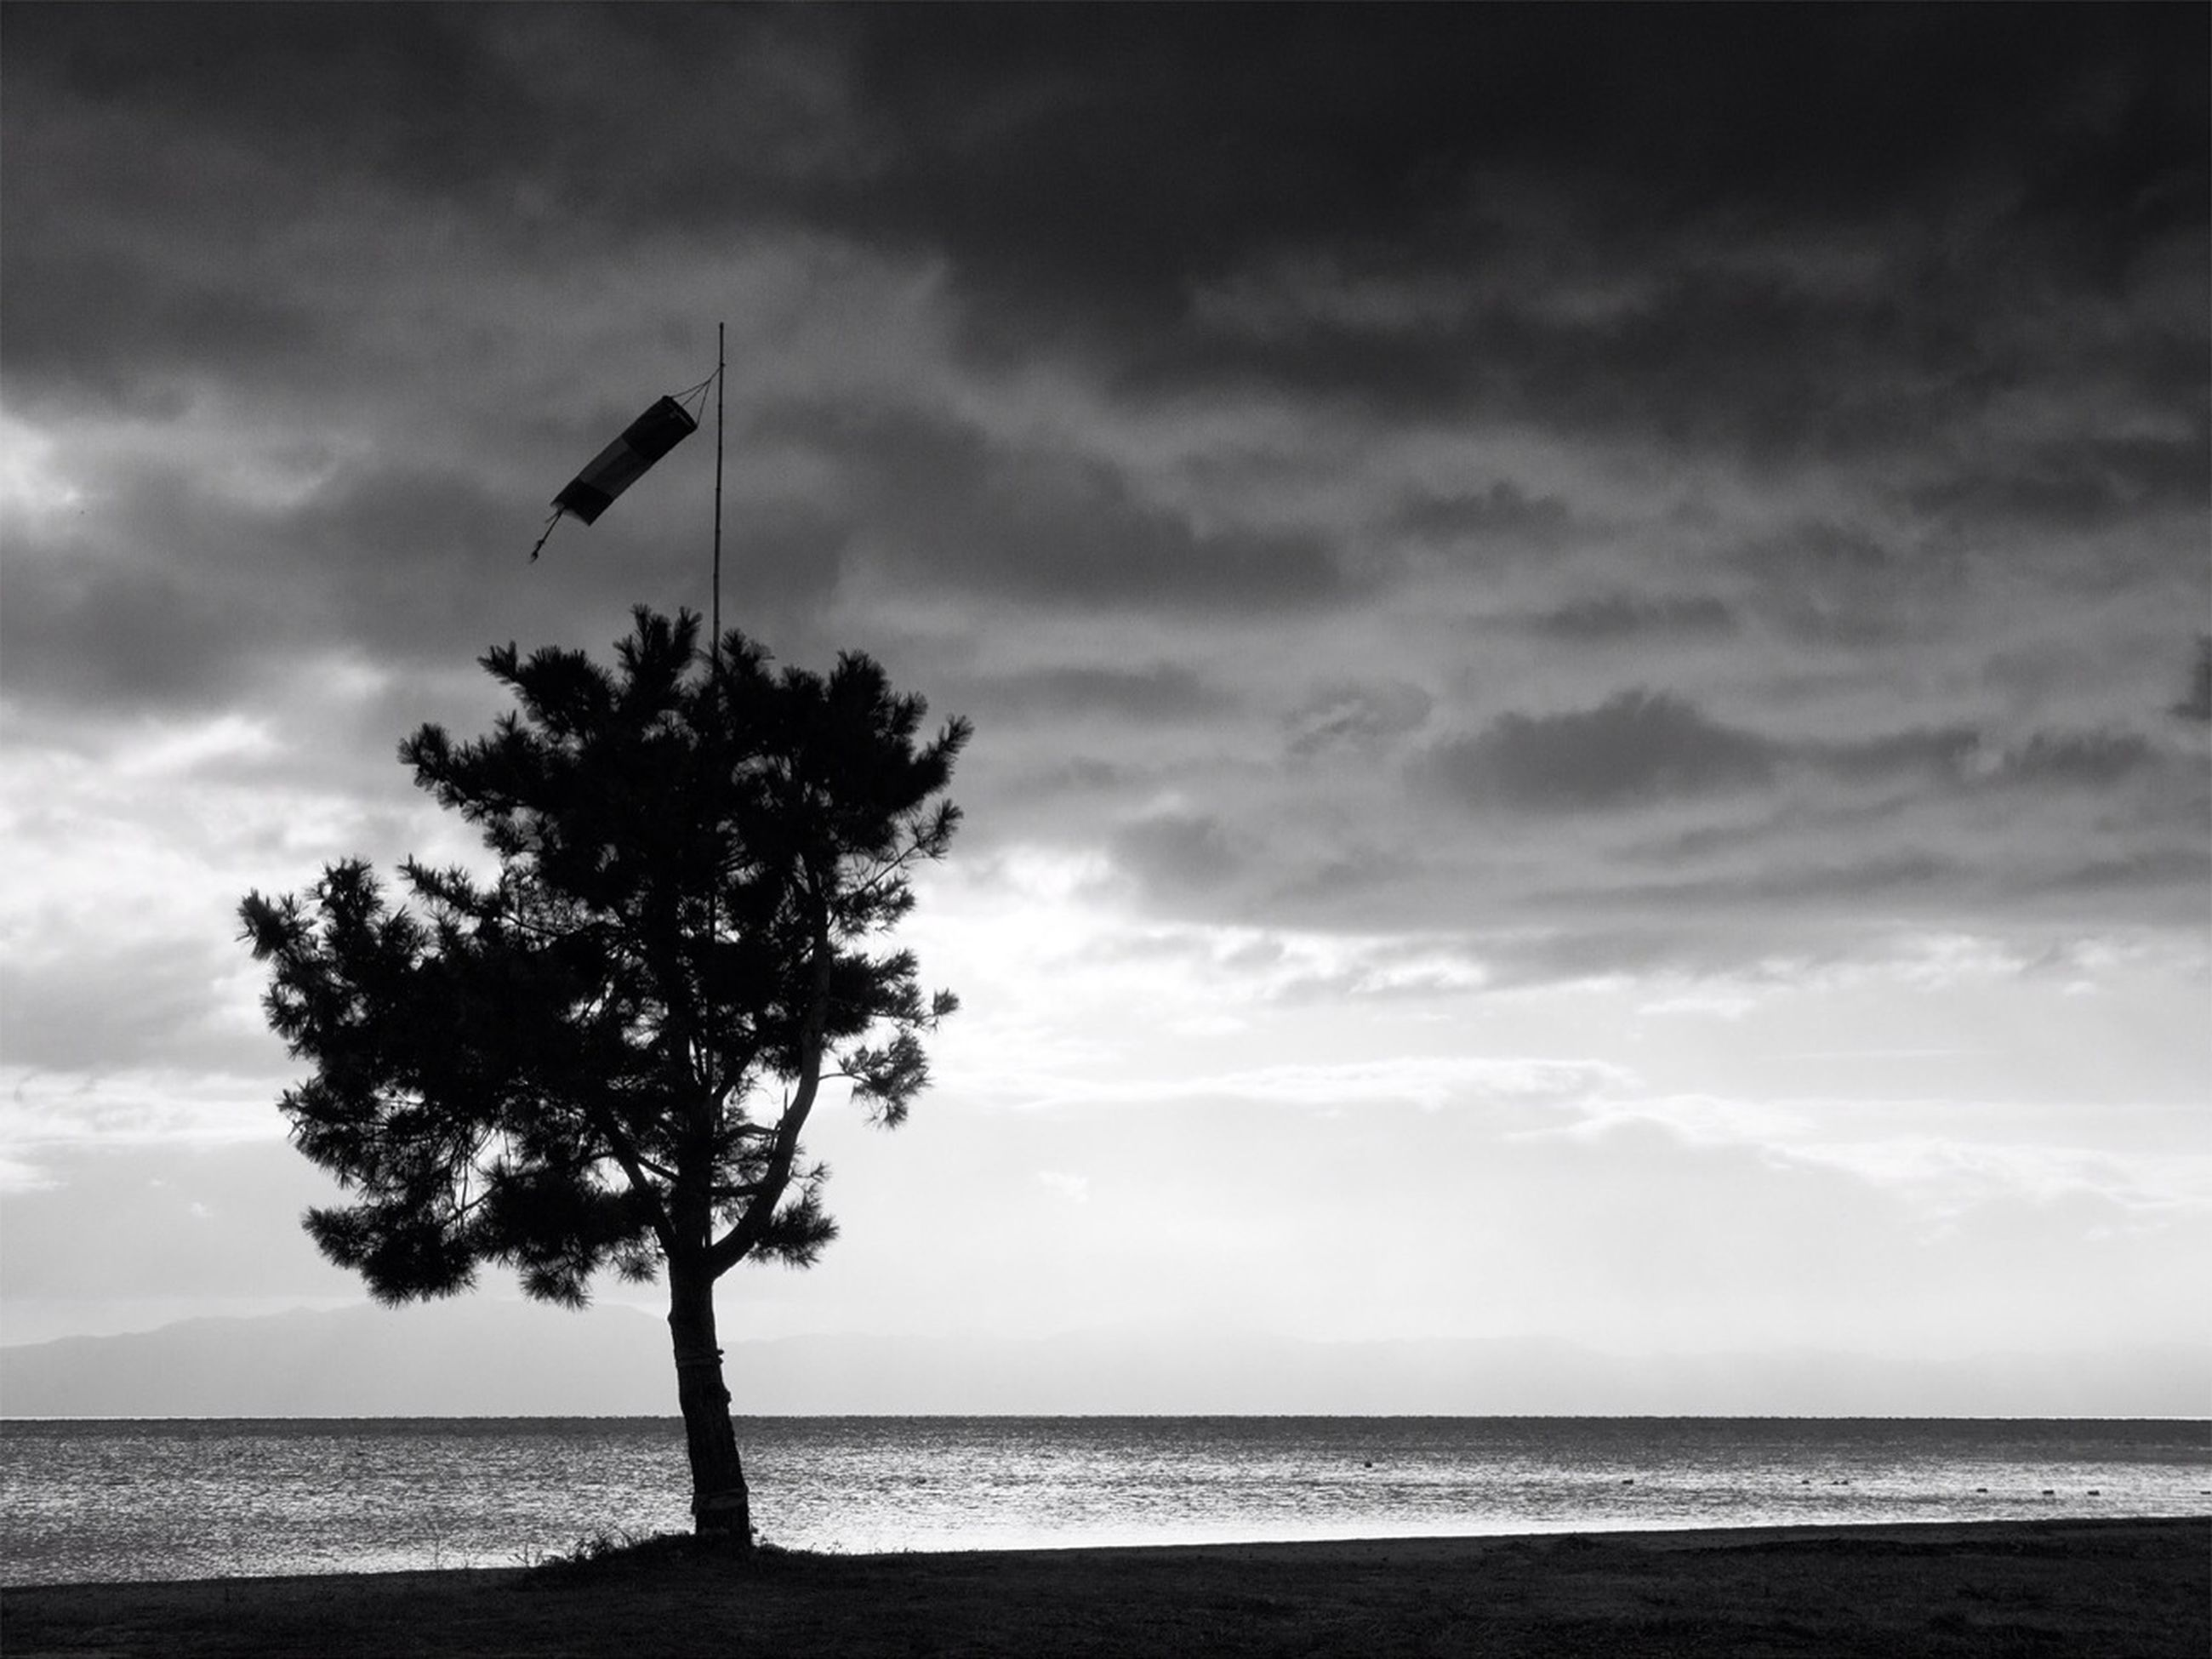 sea, horizon over water, sky, tranquil scene, cloud - sky, water, tranquility, beach, scenics, beauty in nature, cloudy, cloud, nature, silhouette, shore, tree, idyllic, outdoors, overcast, remote